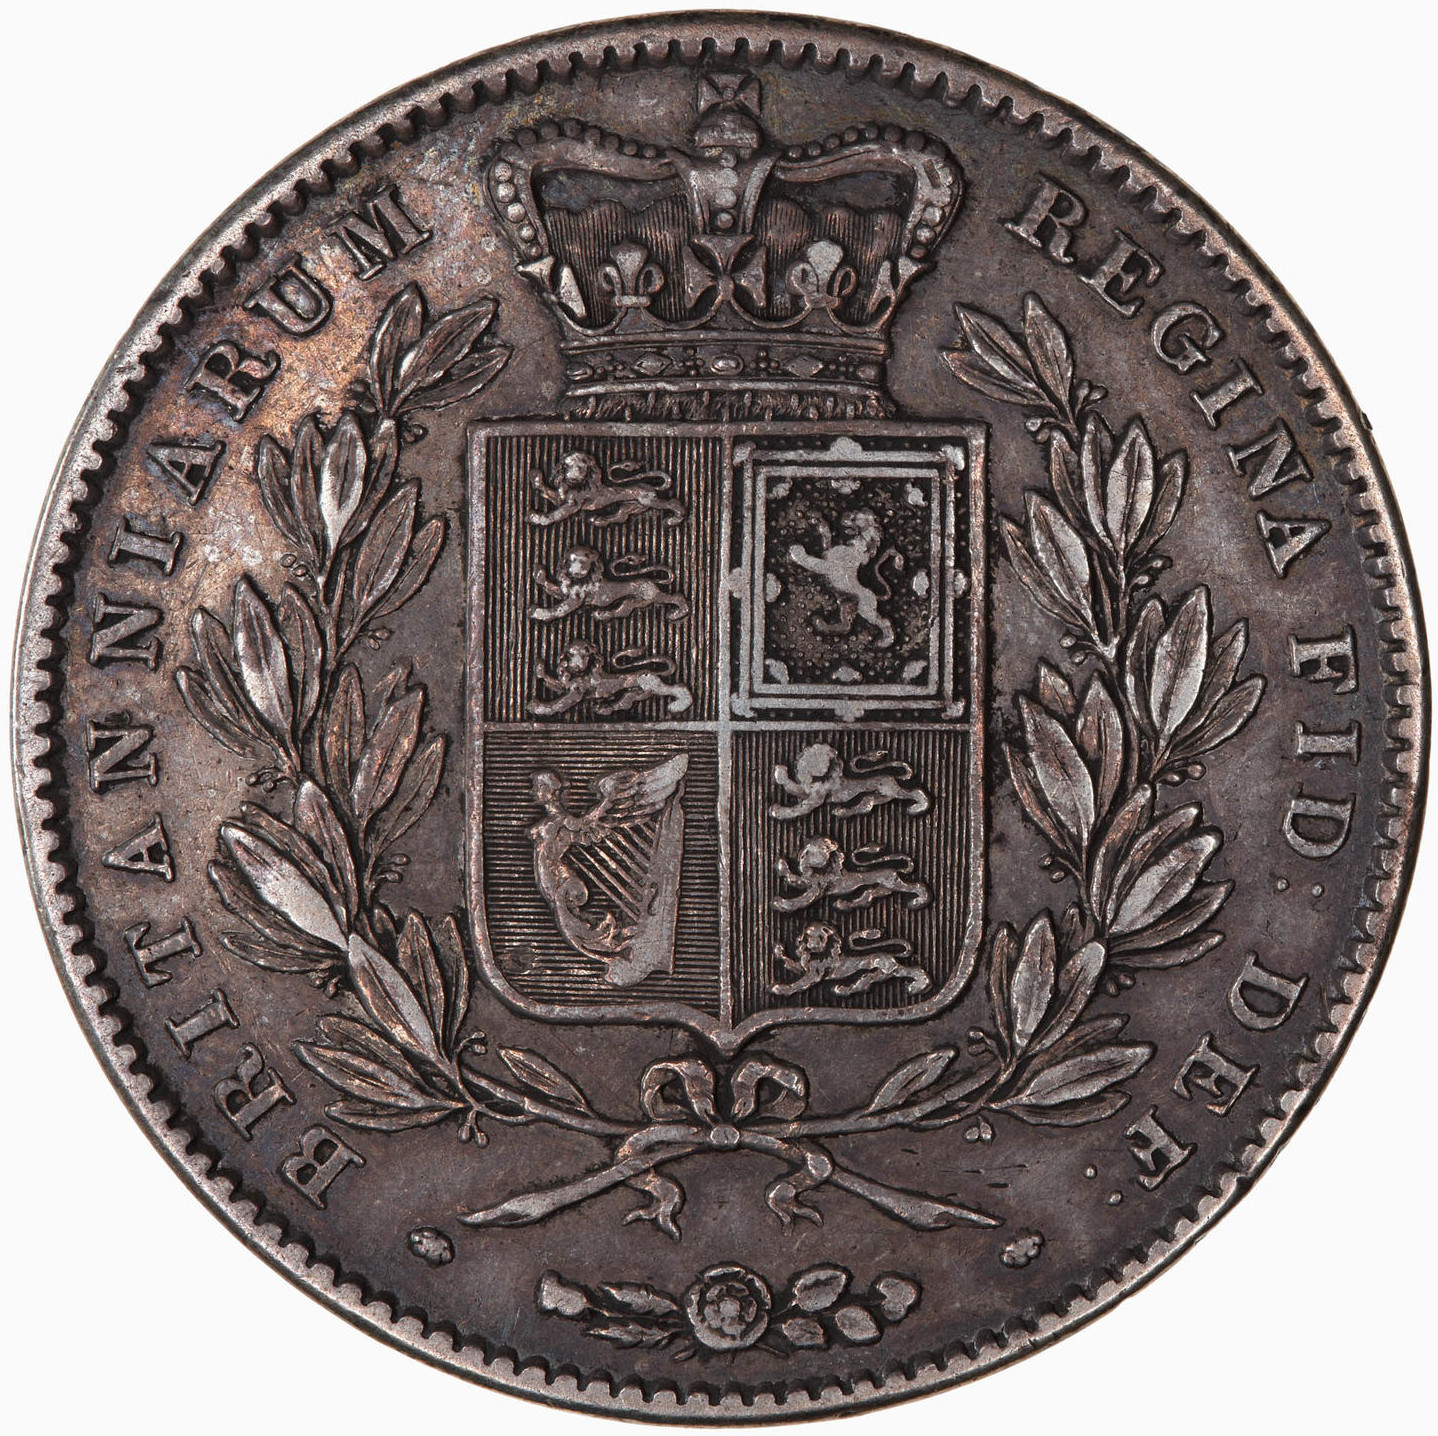 Crown 1844: Photo Coin - Crown, Queen Victoria, Great Britain, 1844